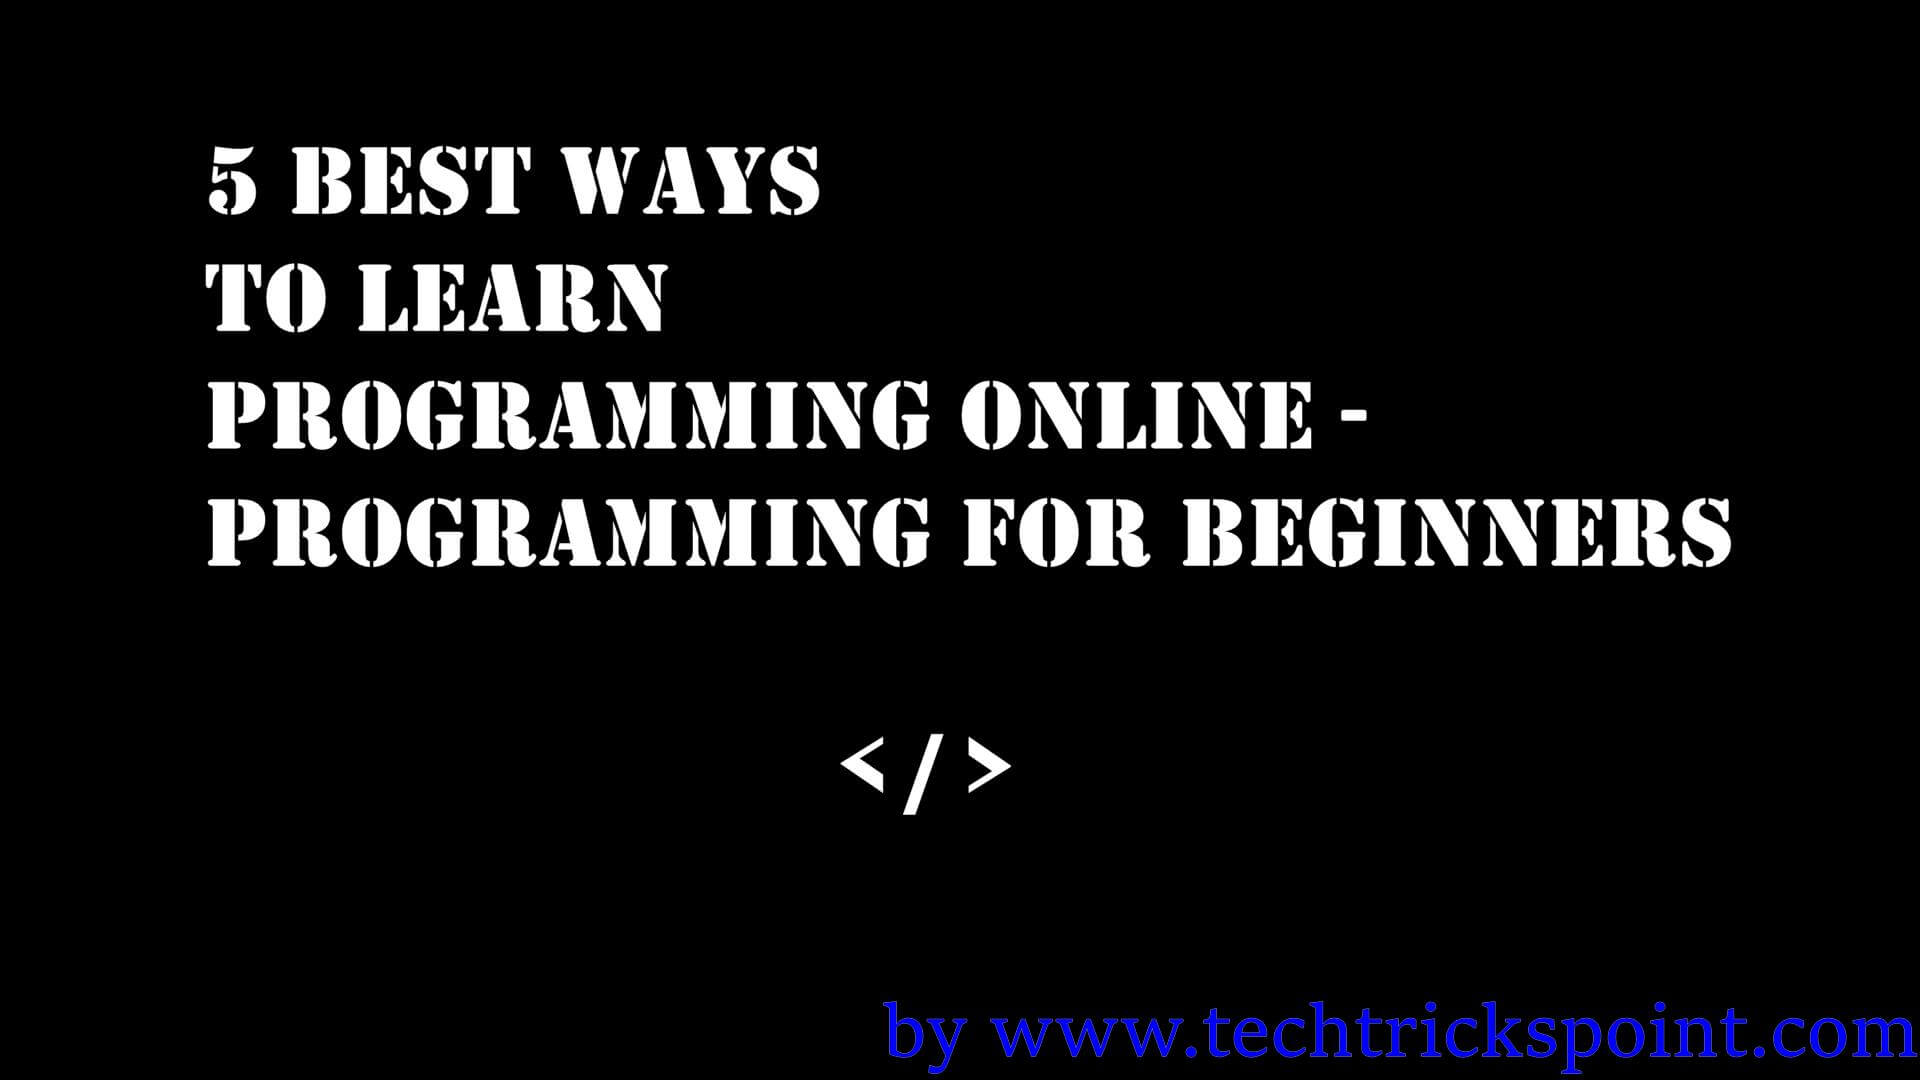 5 Best Ways to Learn Programming Online